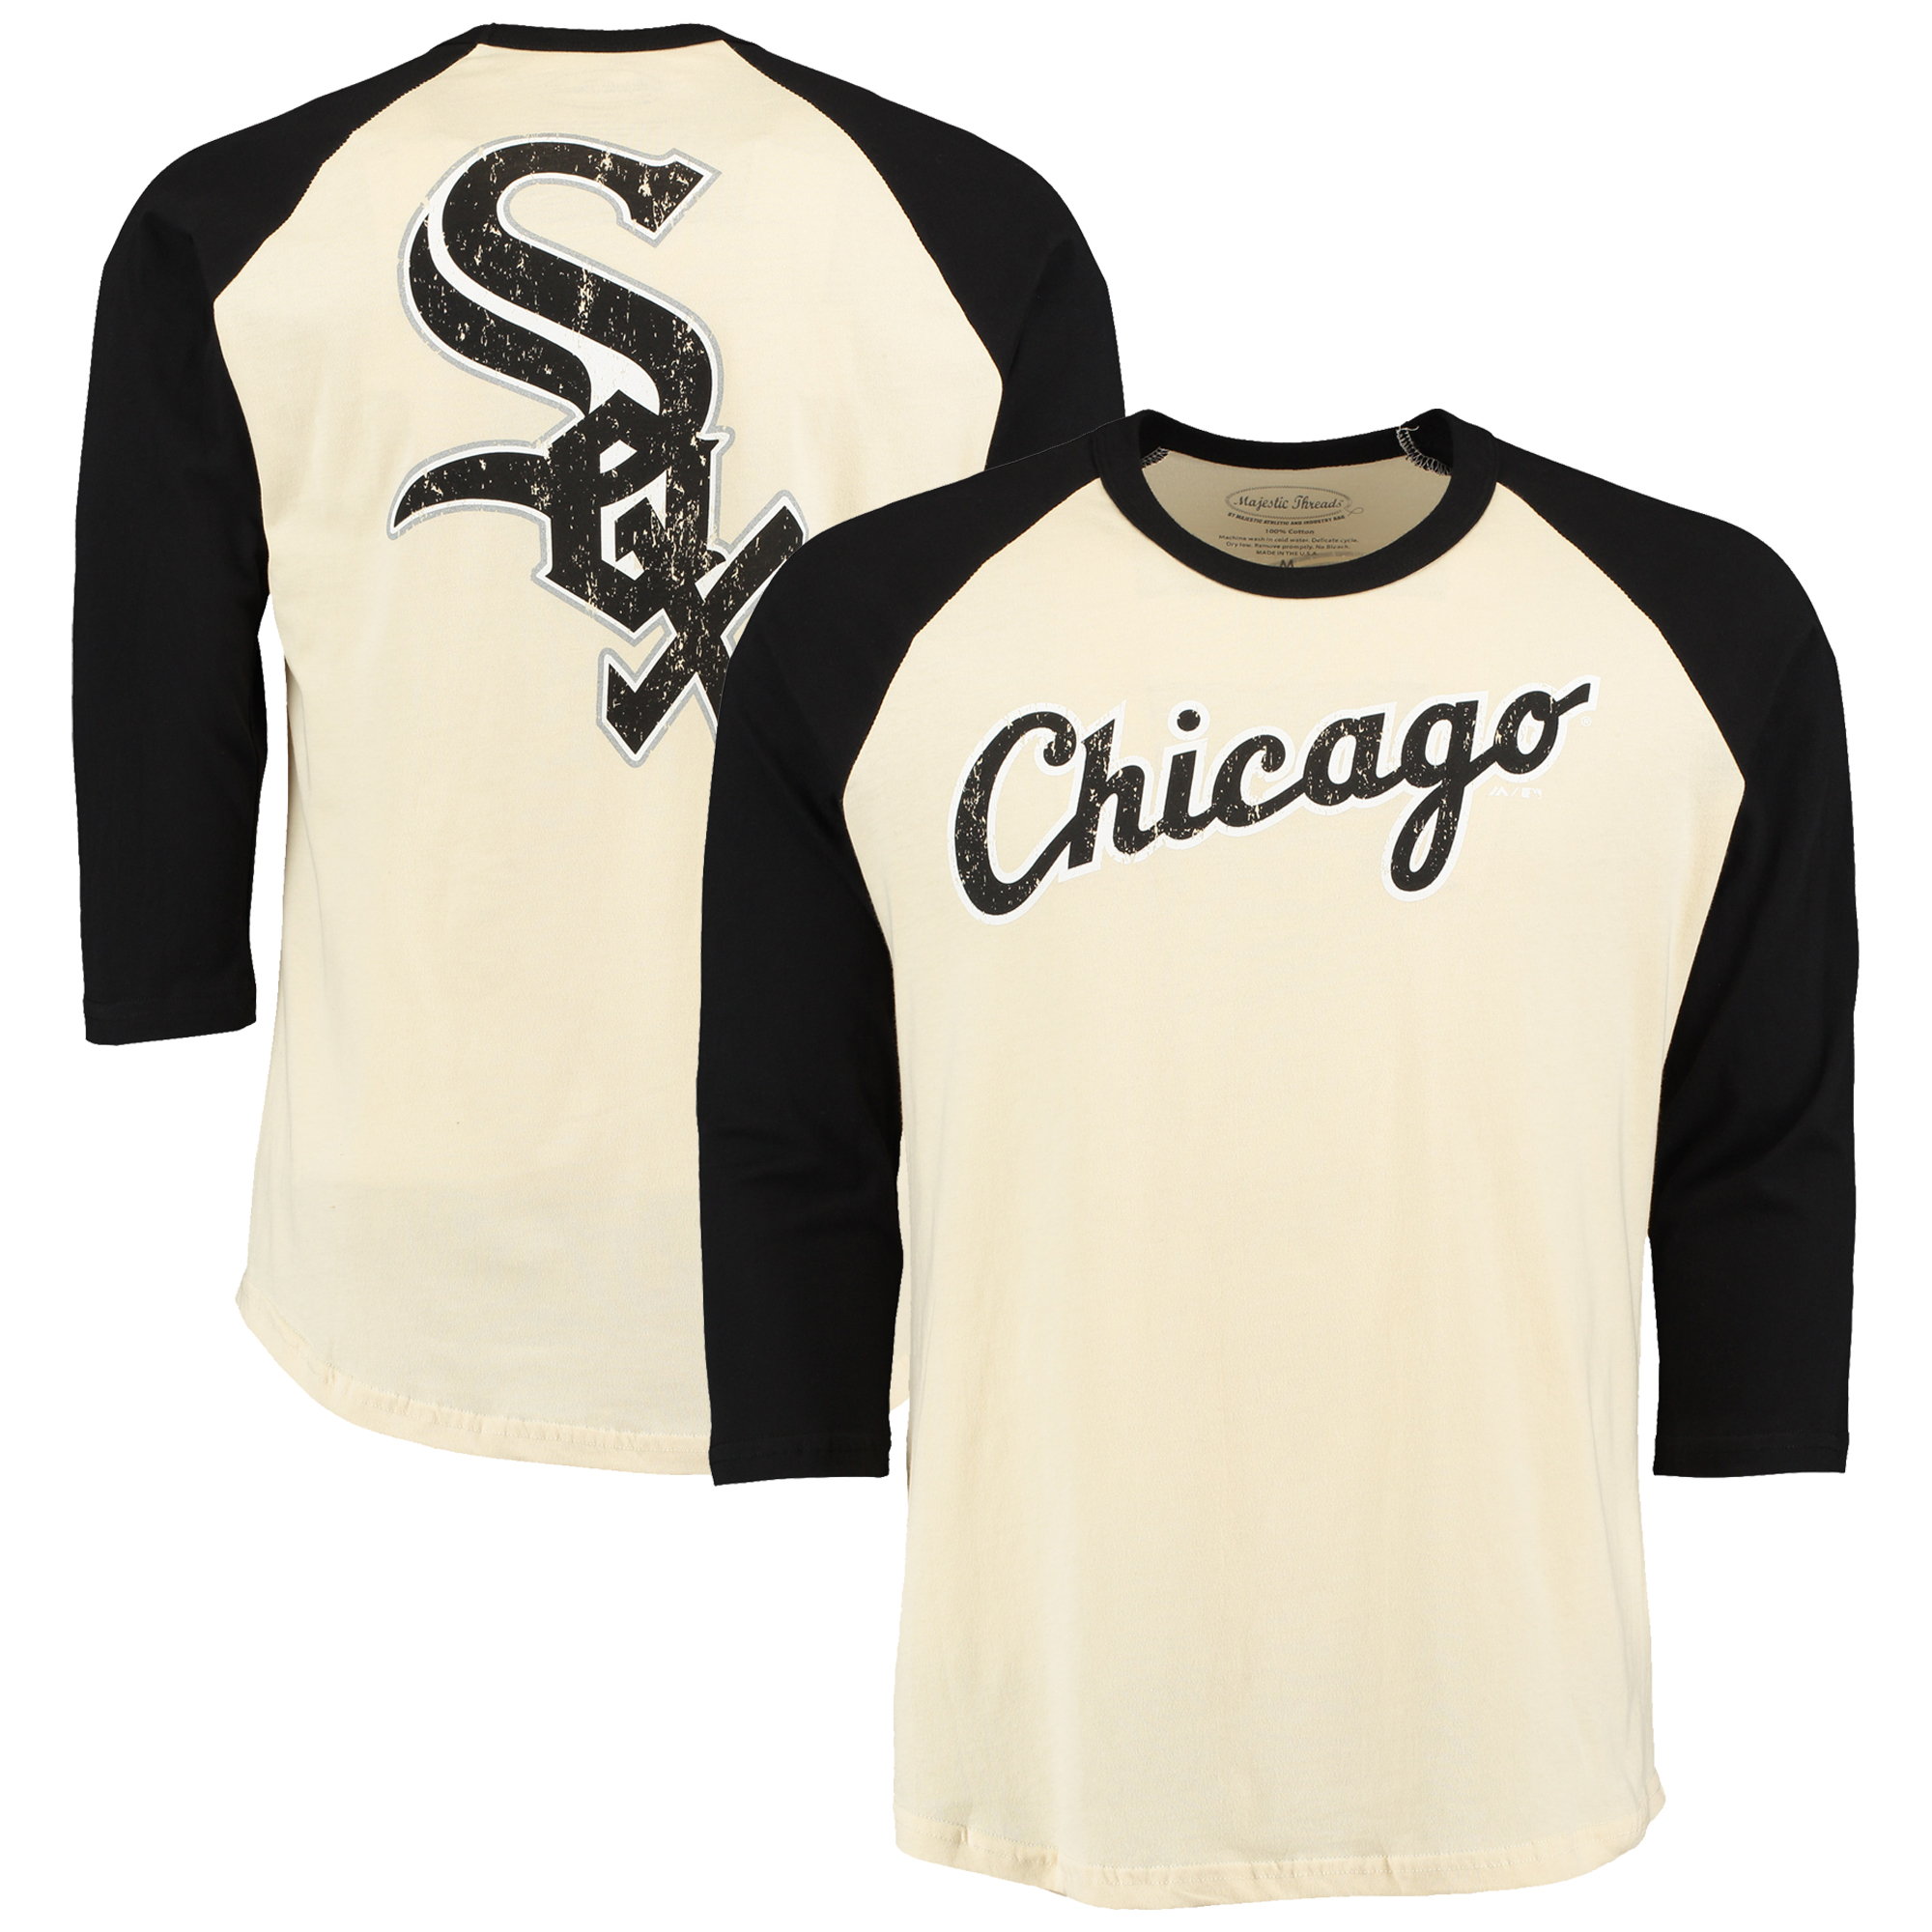 Chicago White Sox Majestic Threads Softhand Vintage Cooperstown Three-Quarter Raglan Sleeve T-Shirt - Cream/Black